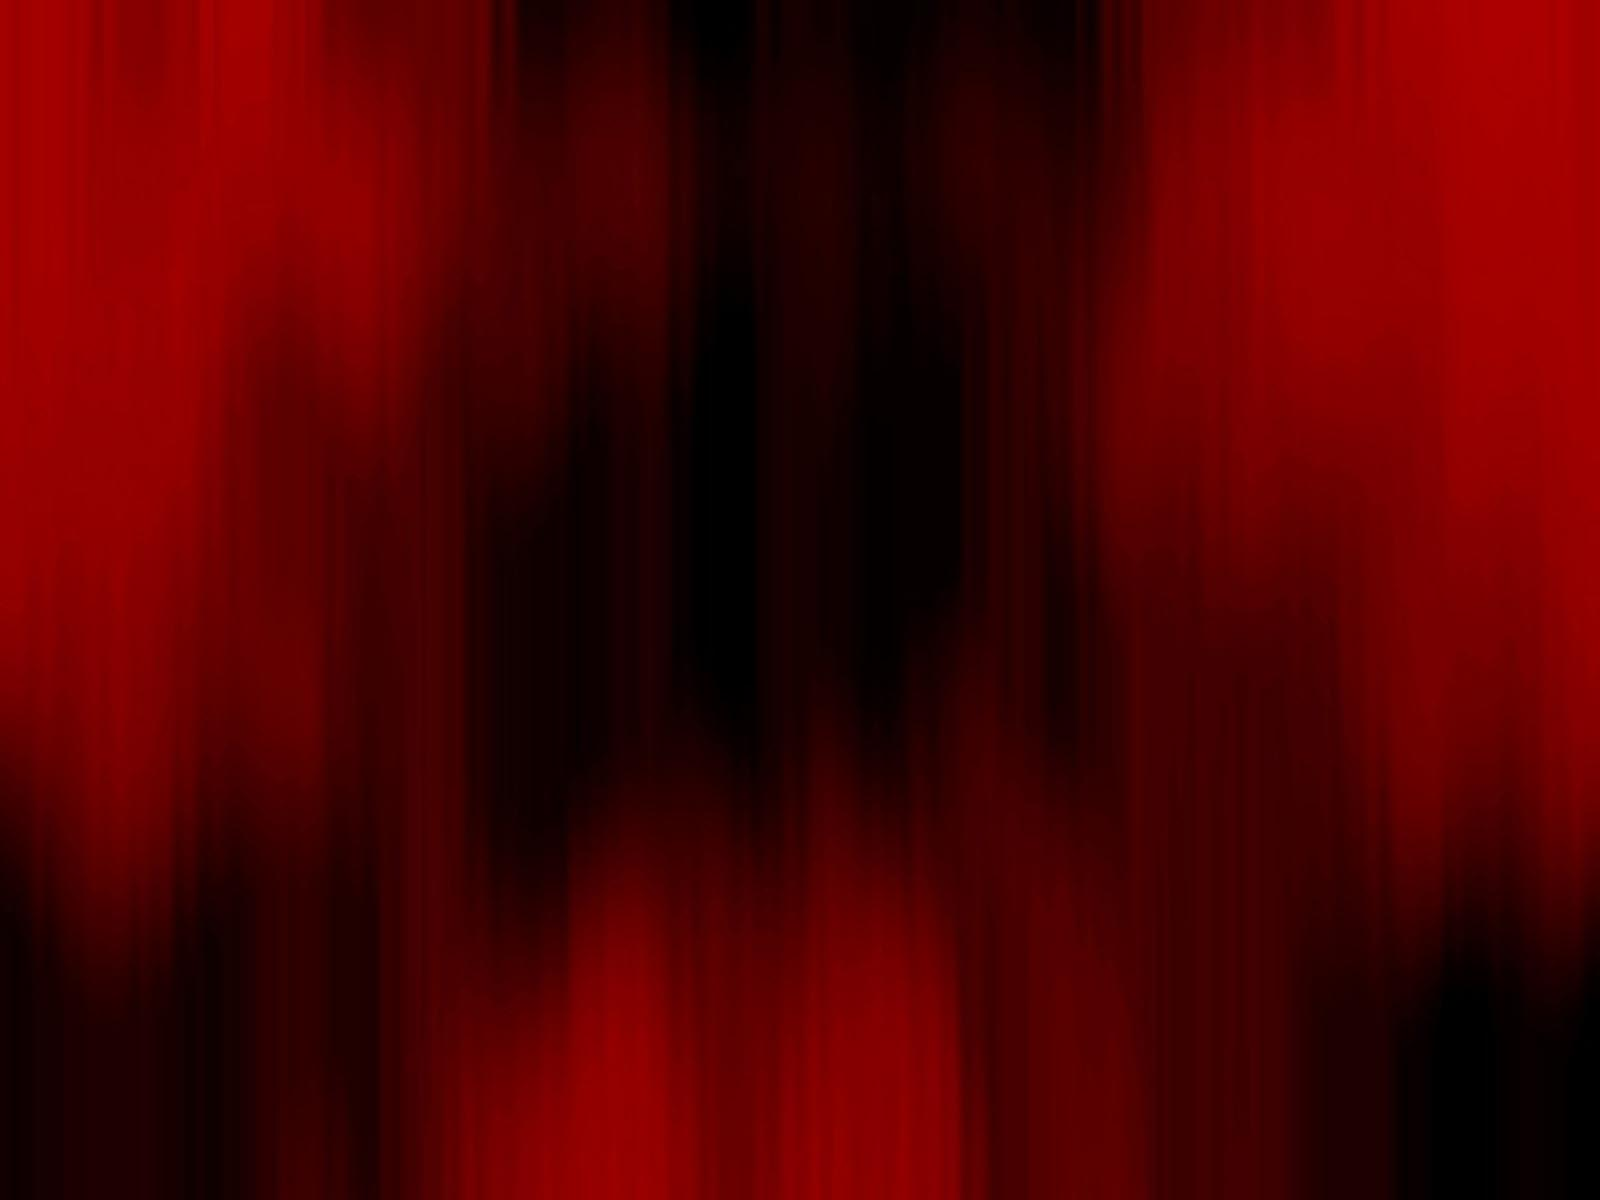 Red And Black Wallpaper Designs 26 Free Wallpaper ...